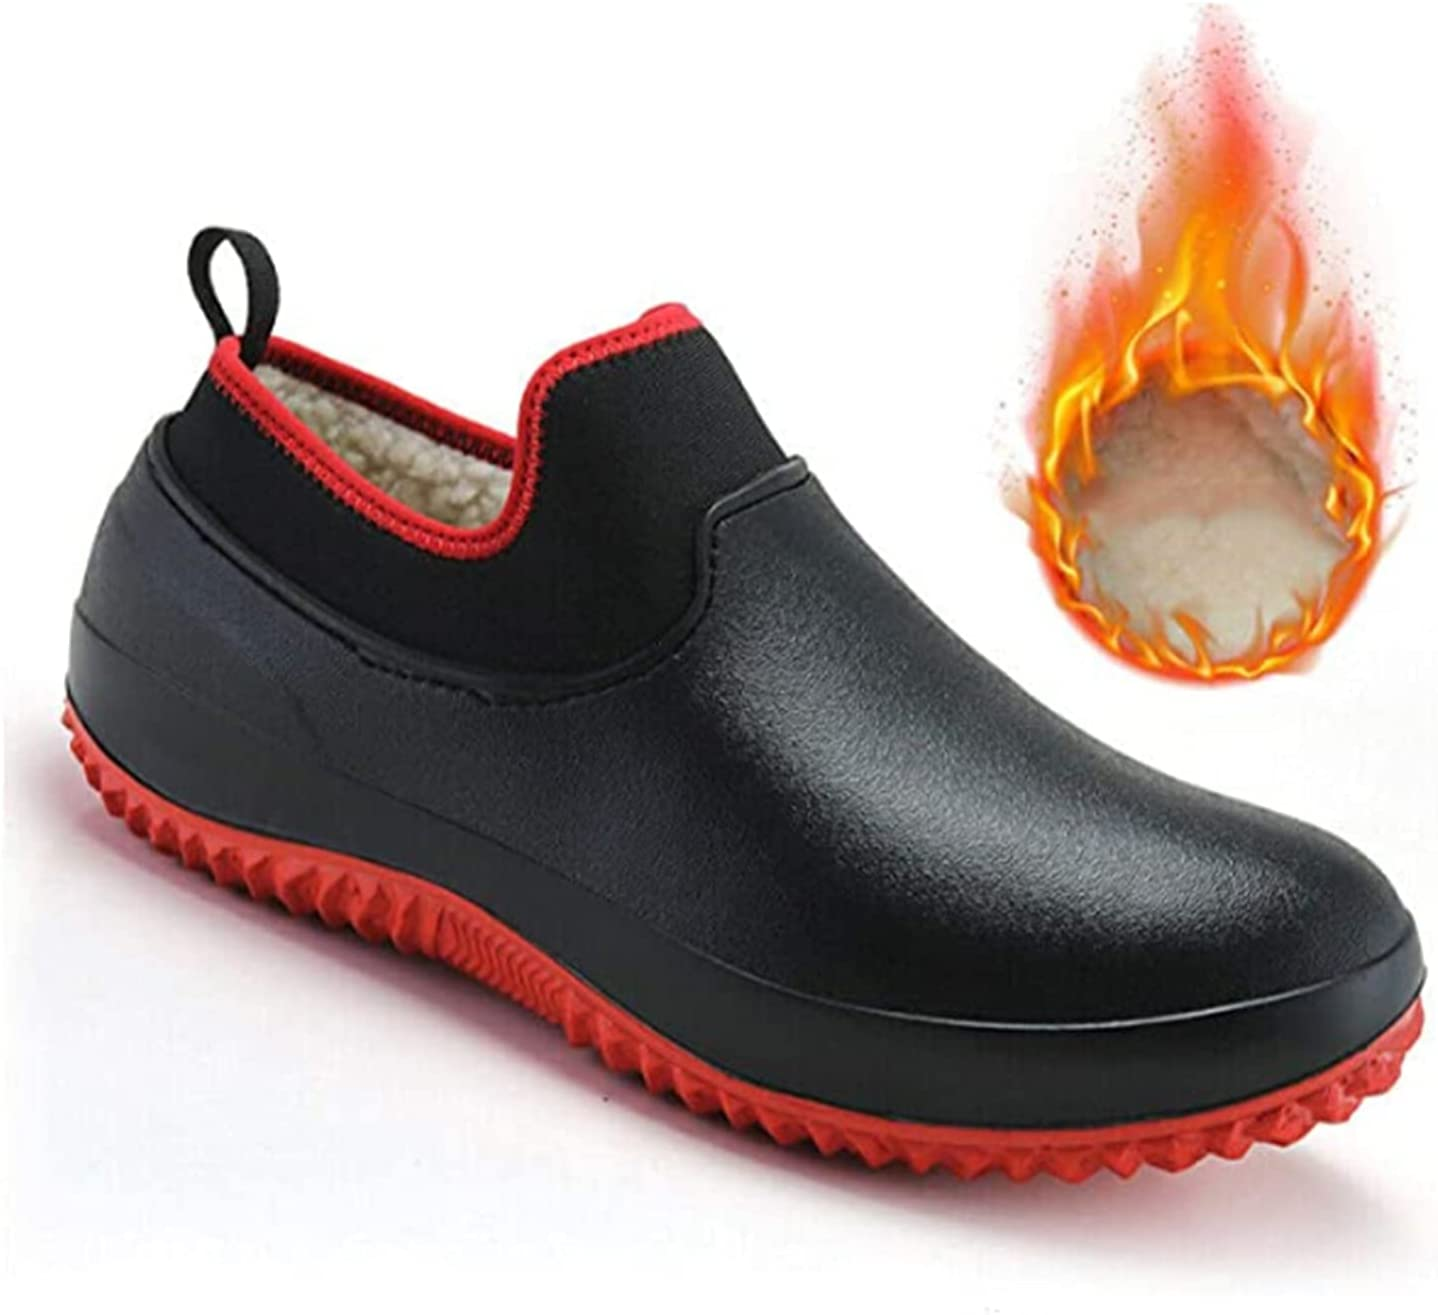 MTDBAOD Non-Slip Chef Shoes, Winter Fur Lined Warm Shoes,Men Women Waterproof Work Clogs Oil Resistant Safety Chef Shoes Garden Shoes (41,Red)